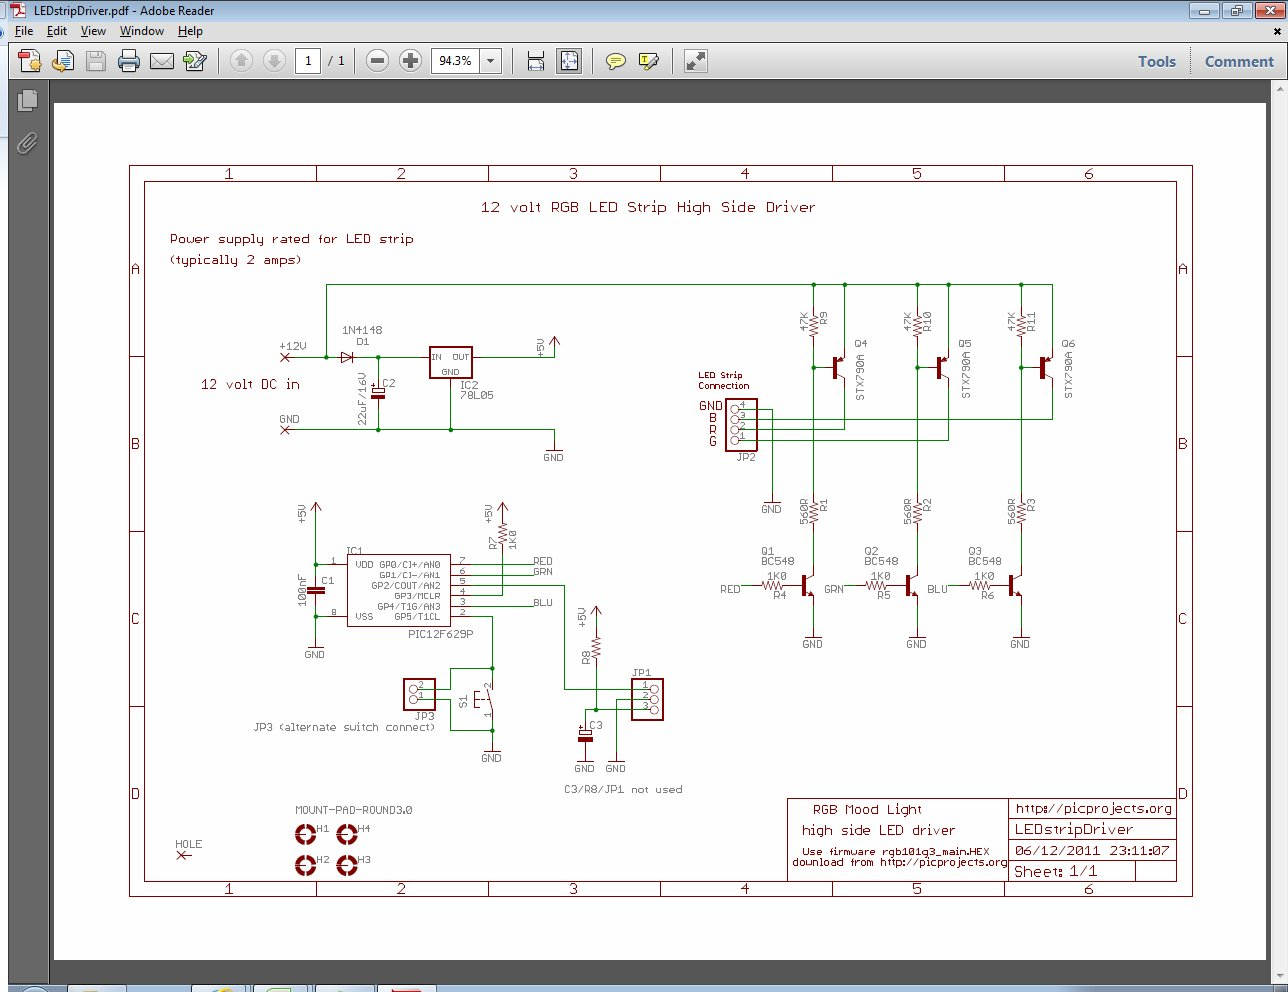 12v Led Transformer Wiring Diagram Library Pwm Dimmer Using Ne555 Circuit And Block Diagrams Trailer Assembled Board From Schematic 1